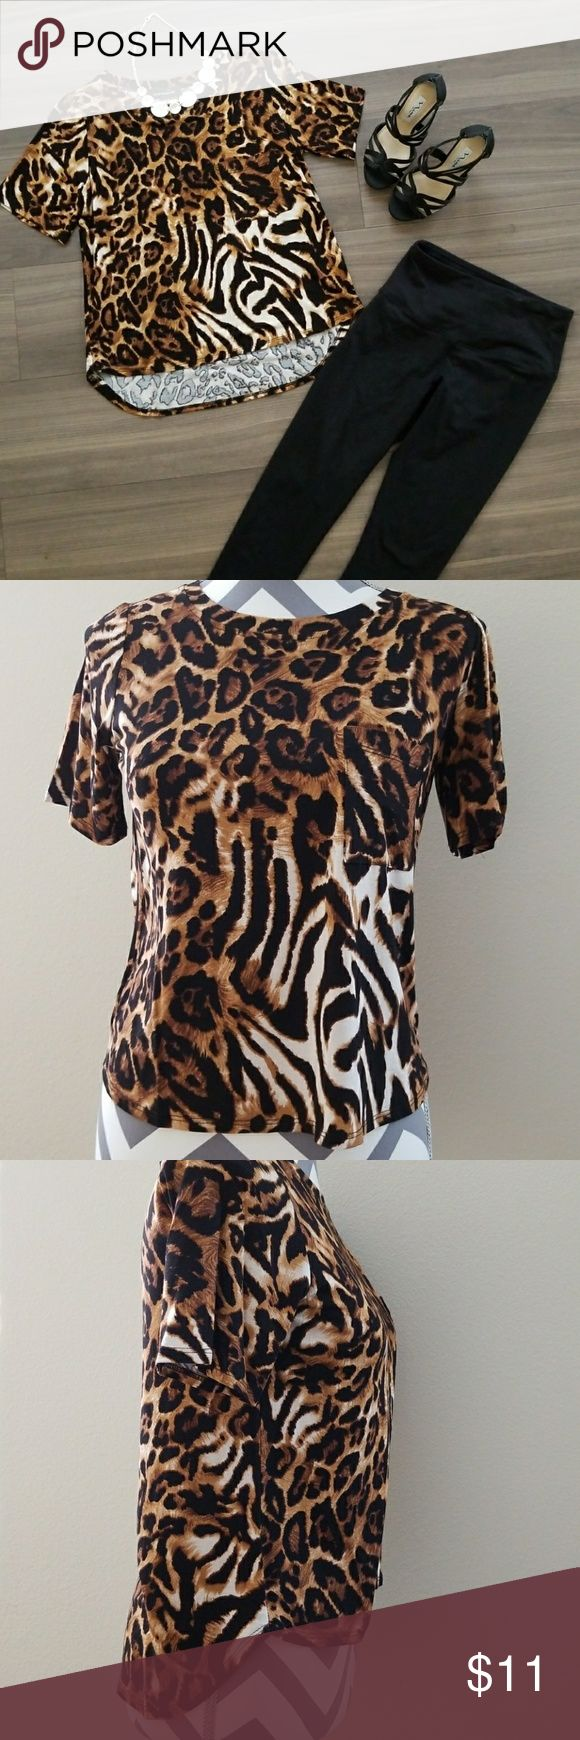 Cheetah print shirt. Never been worn. Cheers print top with a pocket.  FABRIC:  95% Rayon  5% Spandex  Dry clean only. Hourglass Lily Tops